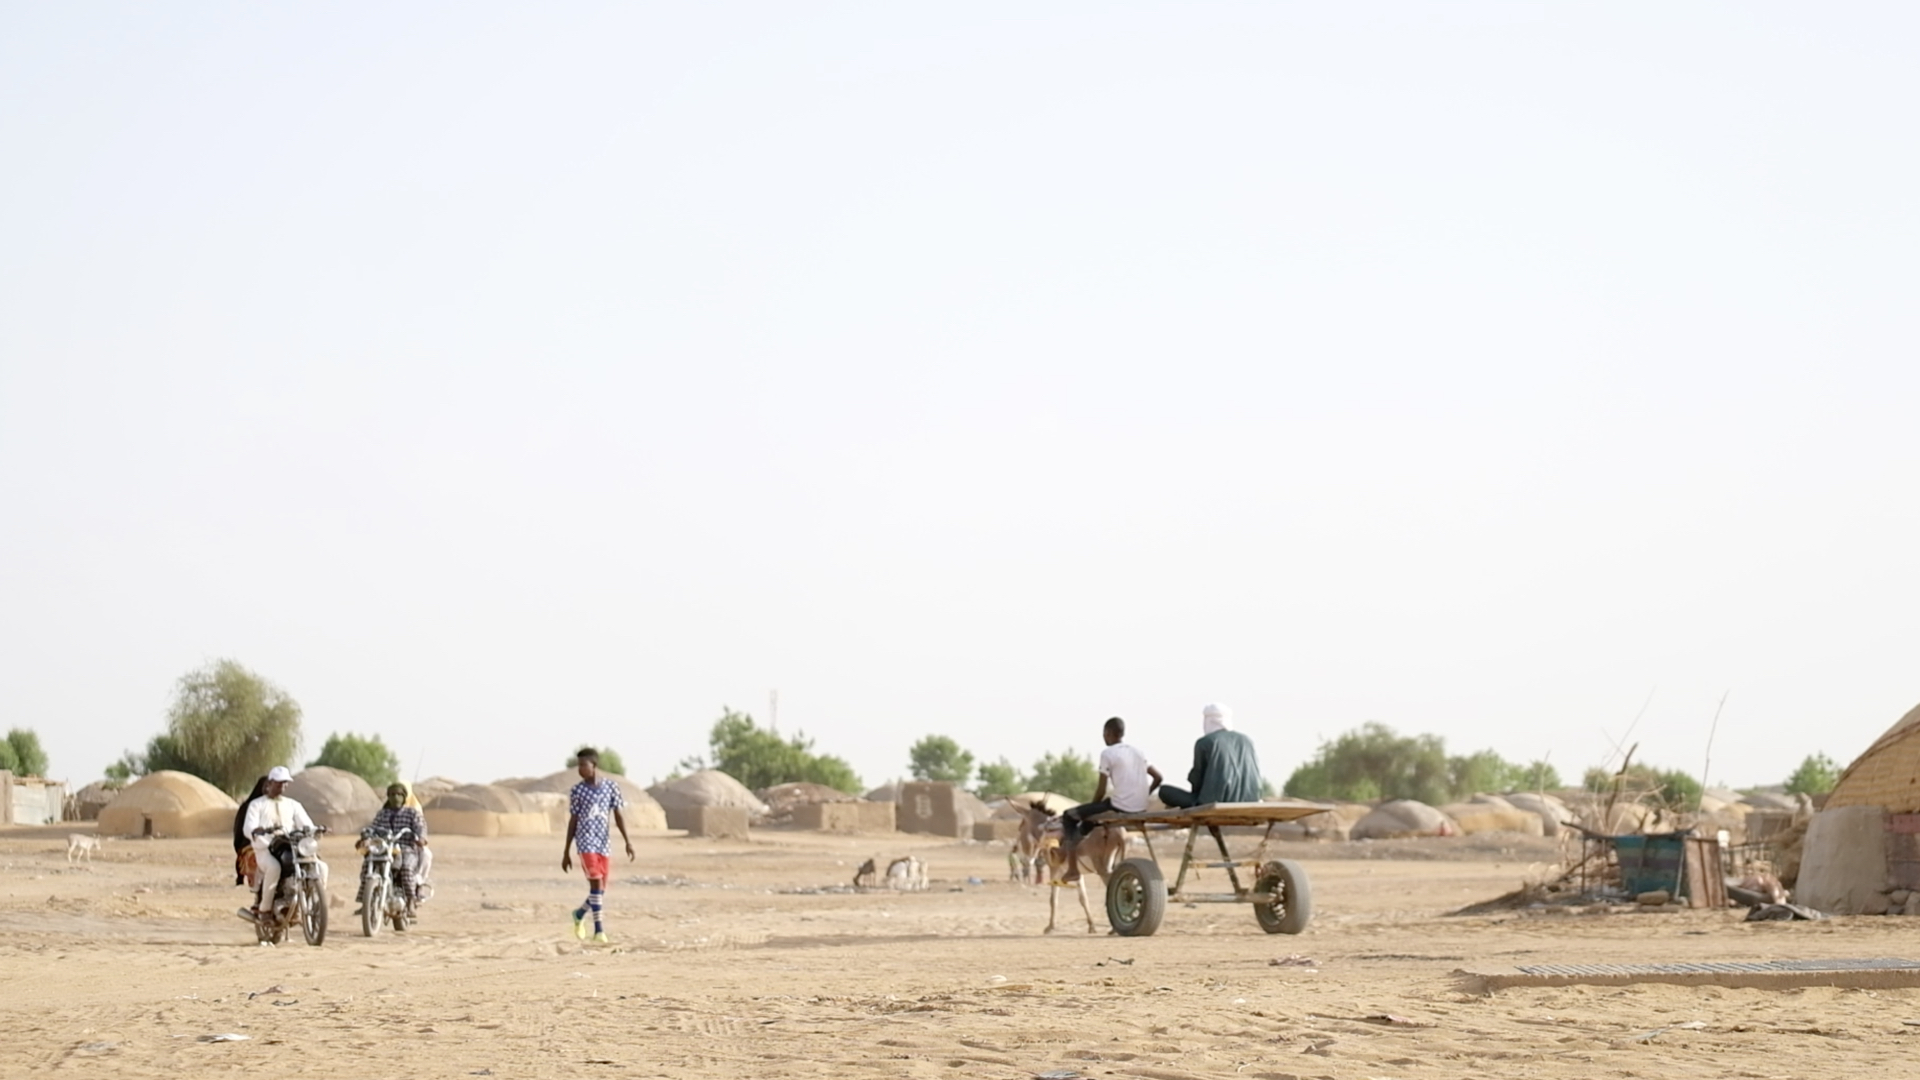 Gao has seen an influx of displaced people, creating challenges to access limited services. The town has been occupied by armed groups but is slowly return to normal, despite ongoing insecurity. Drought and violence drove a surge in people seeking shelter in Gao and many have remained, living in informal settlements on the edge of town.